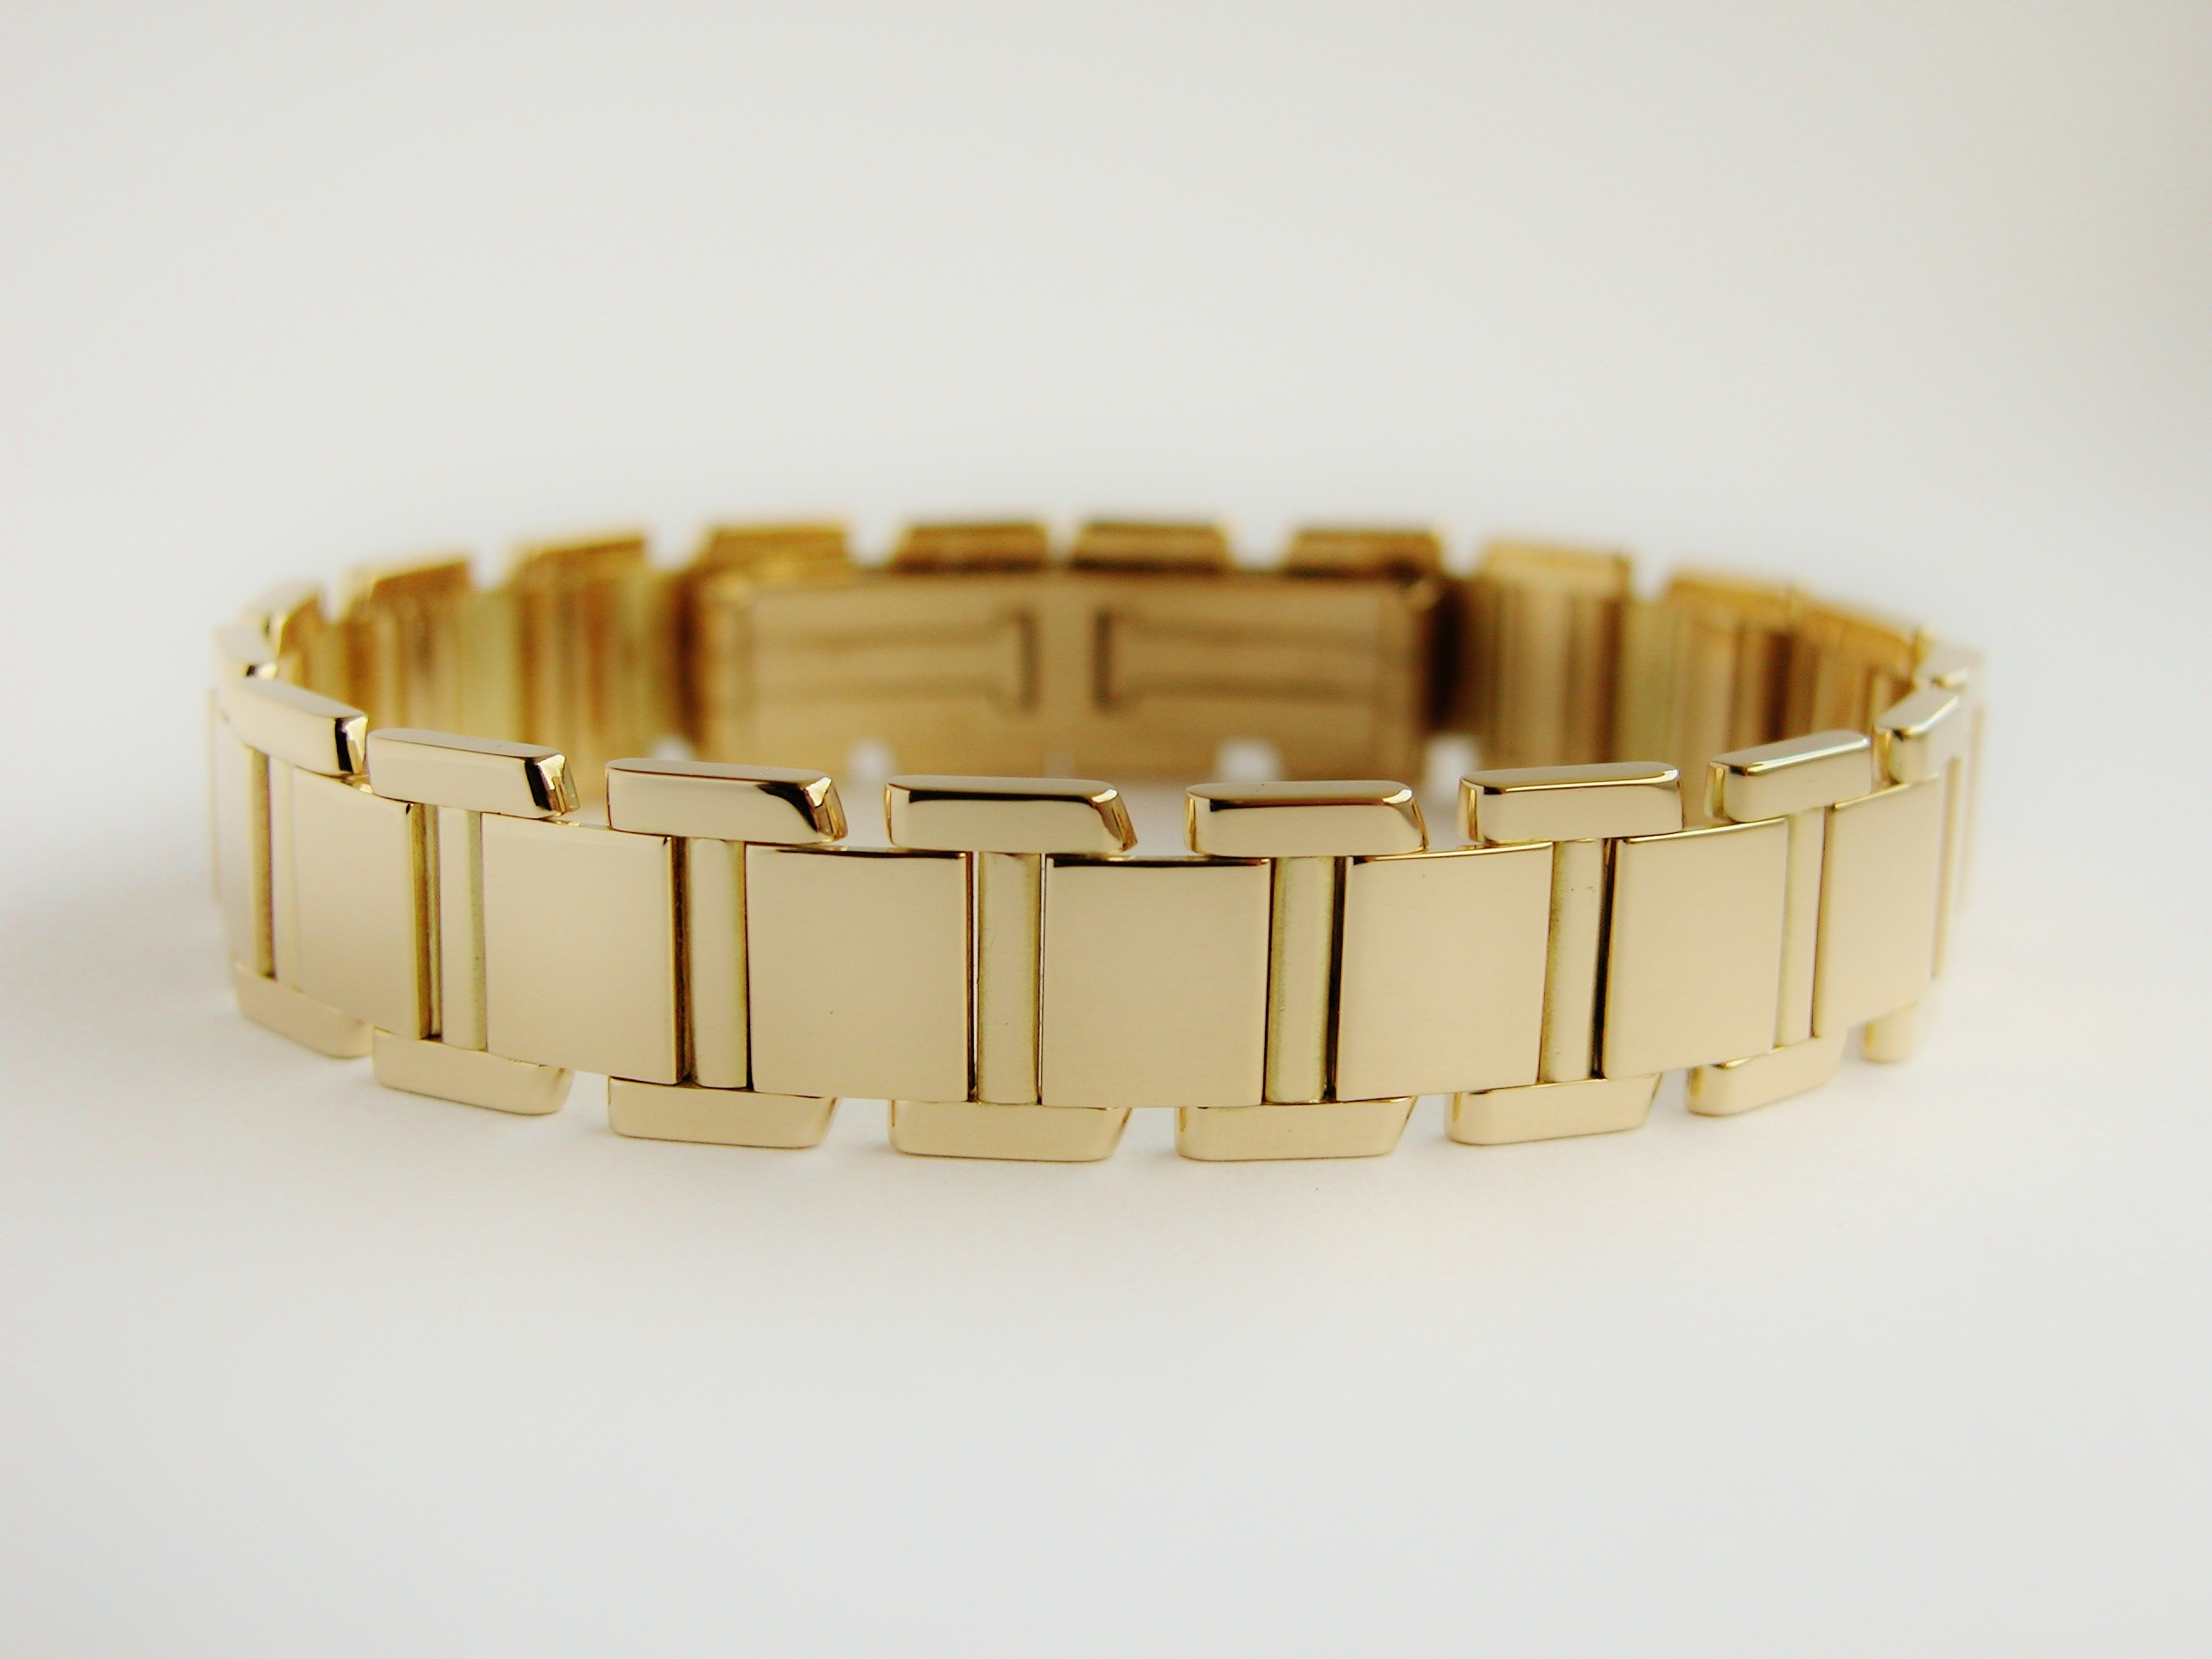 Handmade 18ct. yellow gold square panel bracelet with concealed clasp.